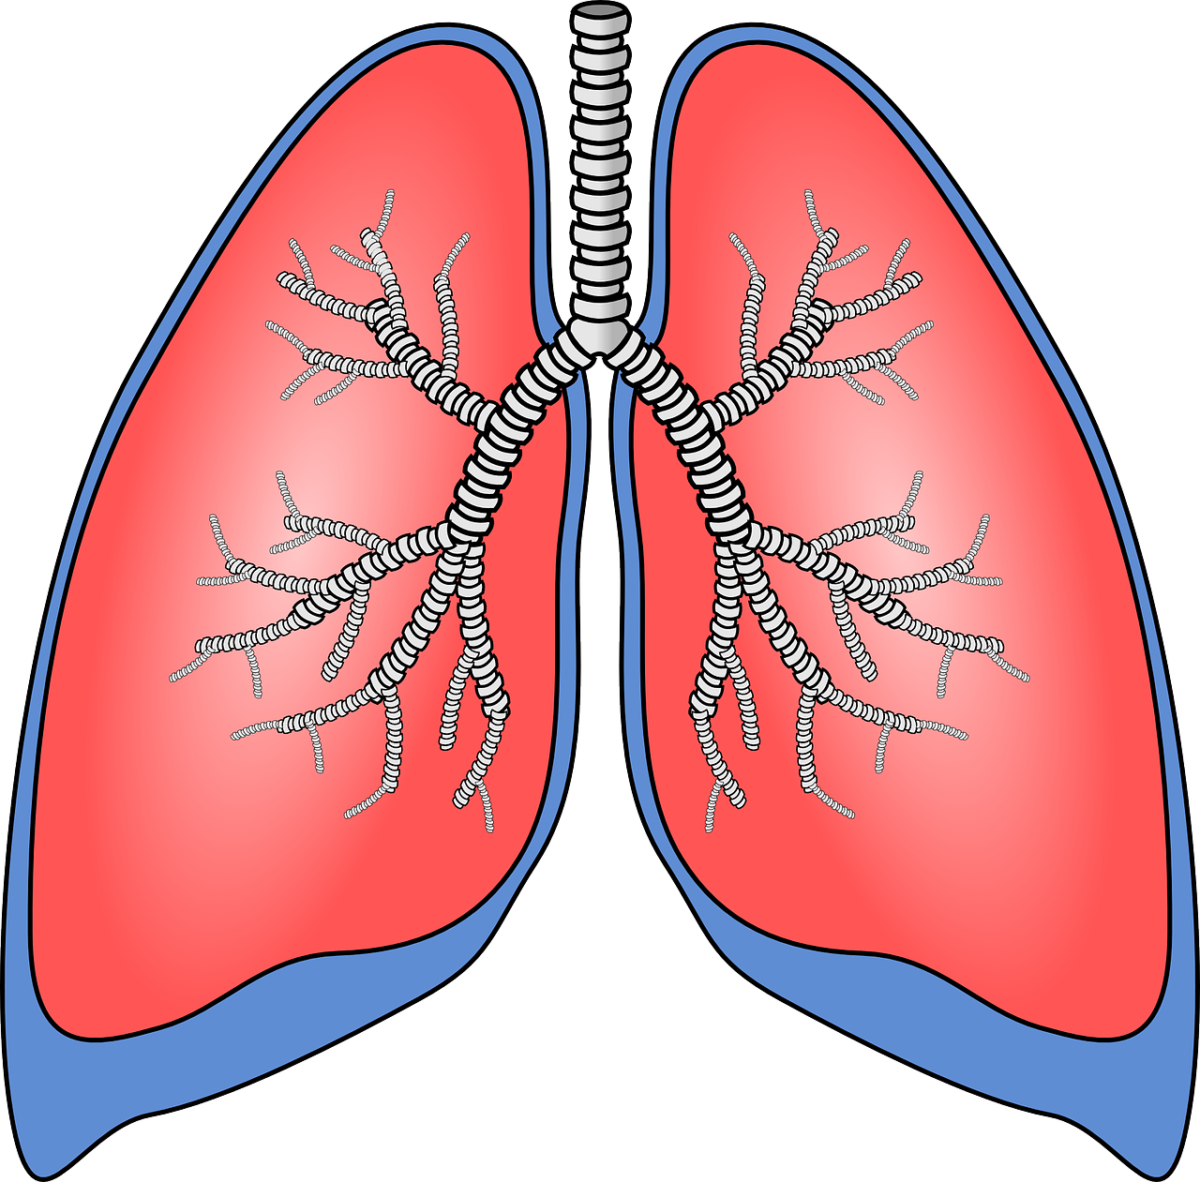 lungs-154282_1280-1200x1182.png